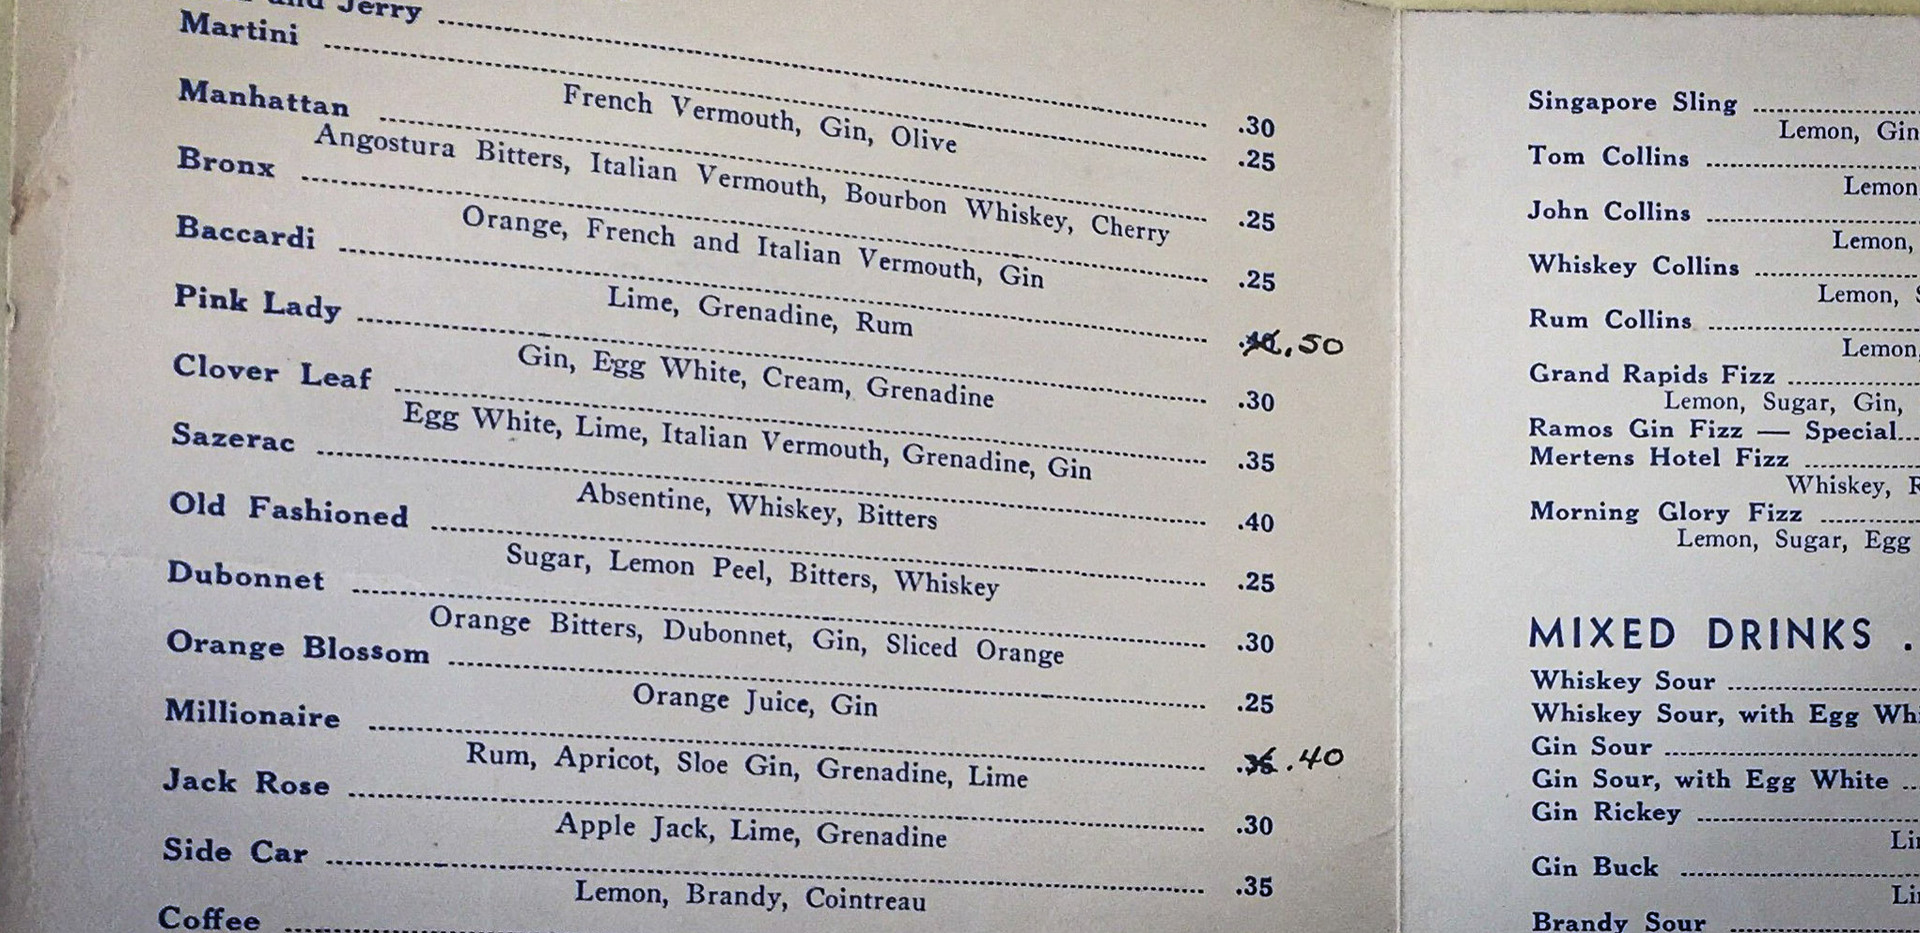 The cocktails at New Hotel Mertens, circa-1939